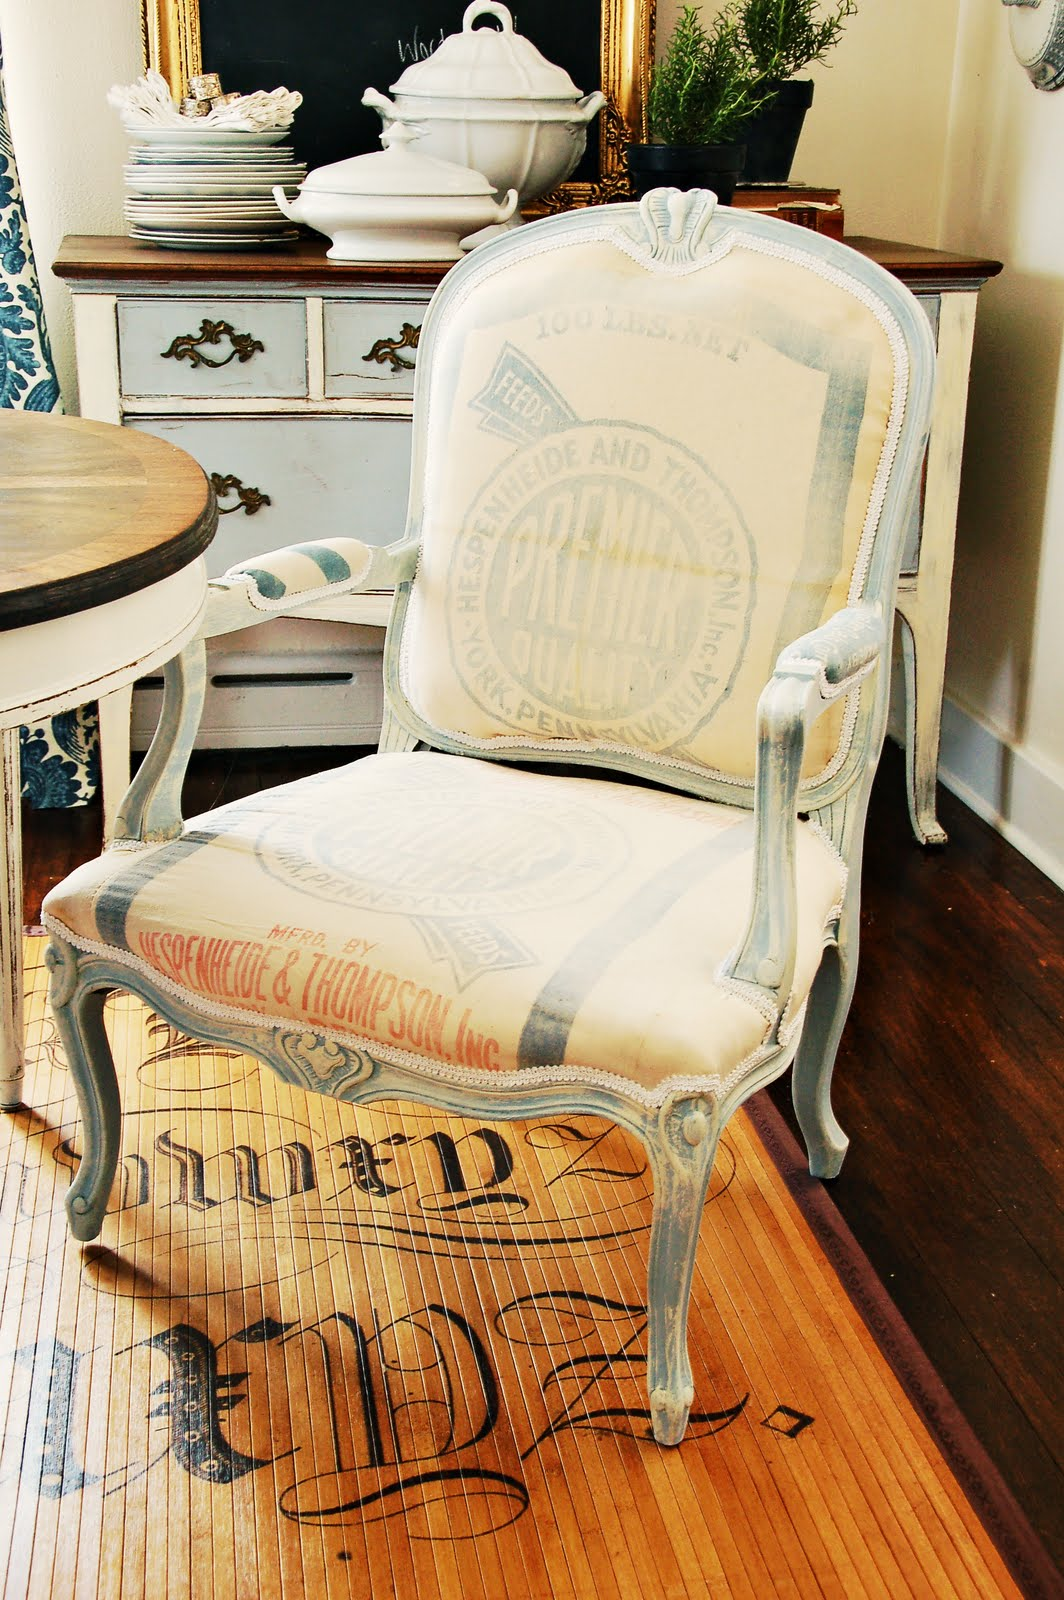 Marian Rescued This Chair, Then Painted, Distressed, And Reupholstered It  In A Vintage Feed Sack. Awesome!